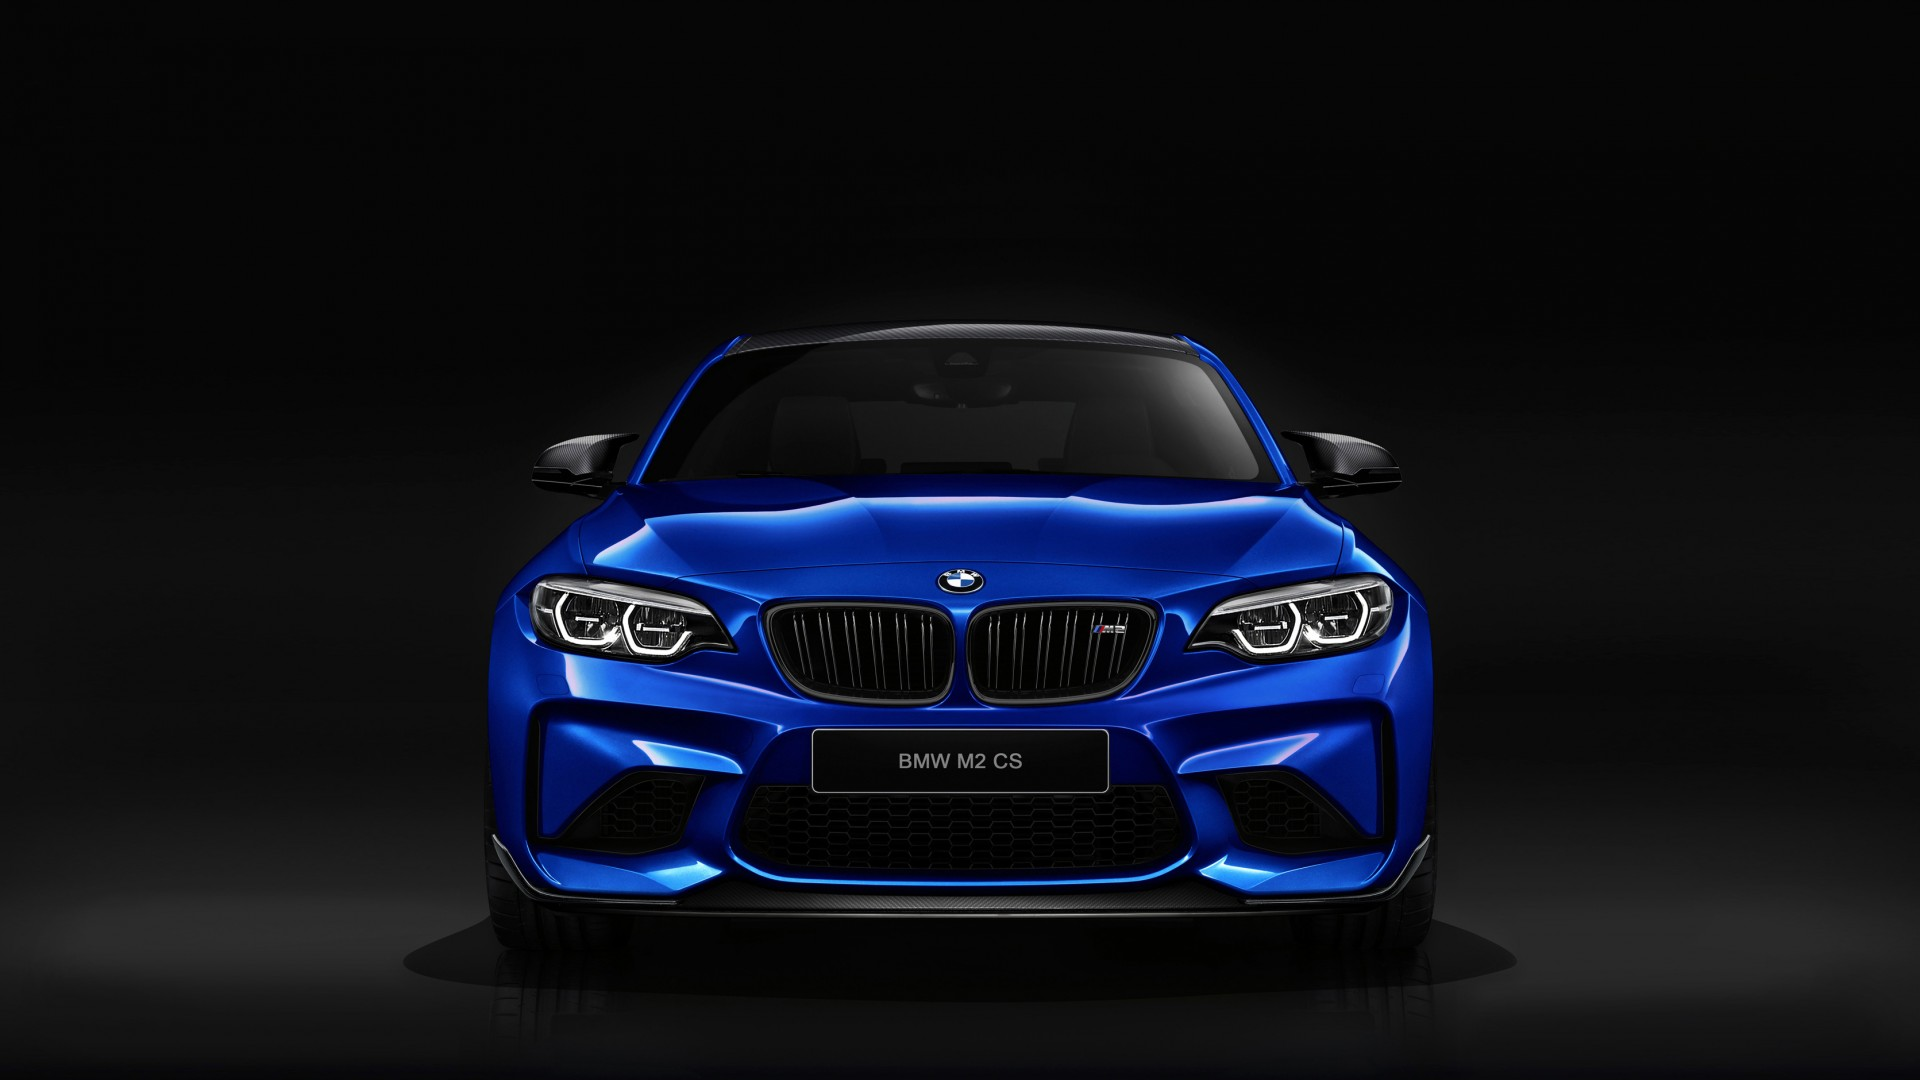 Bmw M Wallpaper Iphone X 2017 Bmw M2 Cs Wallpaper Hd Car Wallpapers Id 8079